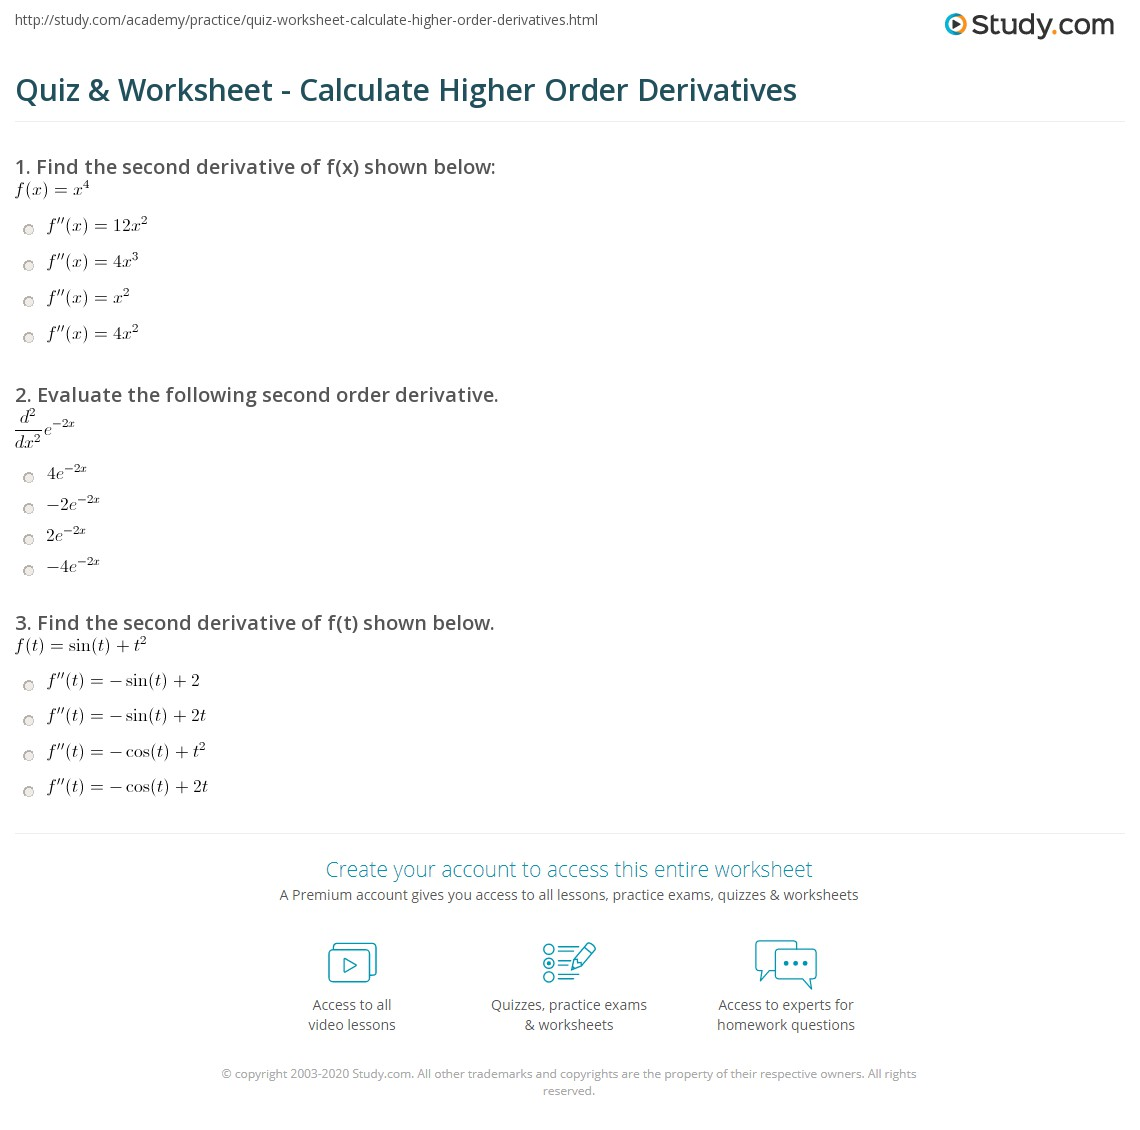 Worksheets Higher Order Derivatives Worksheet quiz worksheet calculate higher order derivatives study com print calculating worksheet